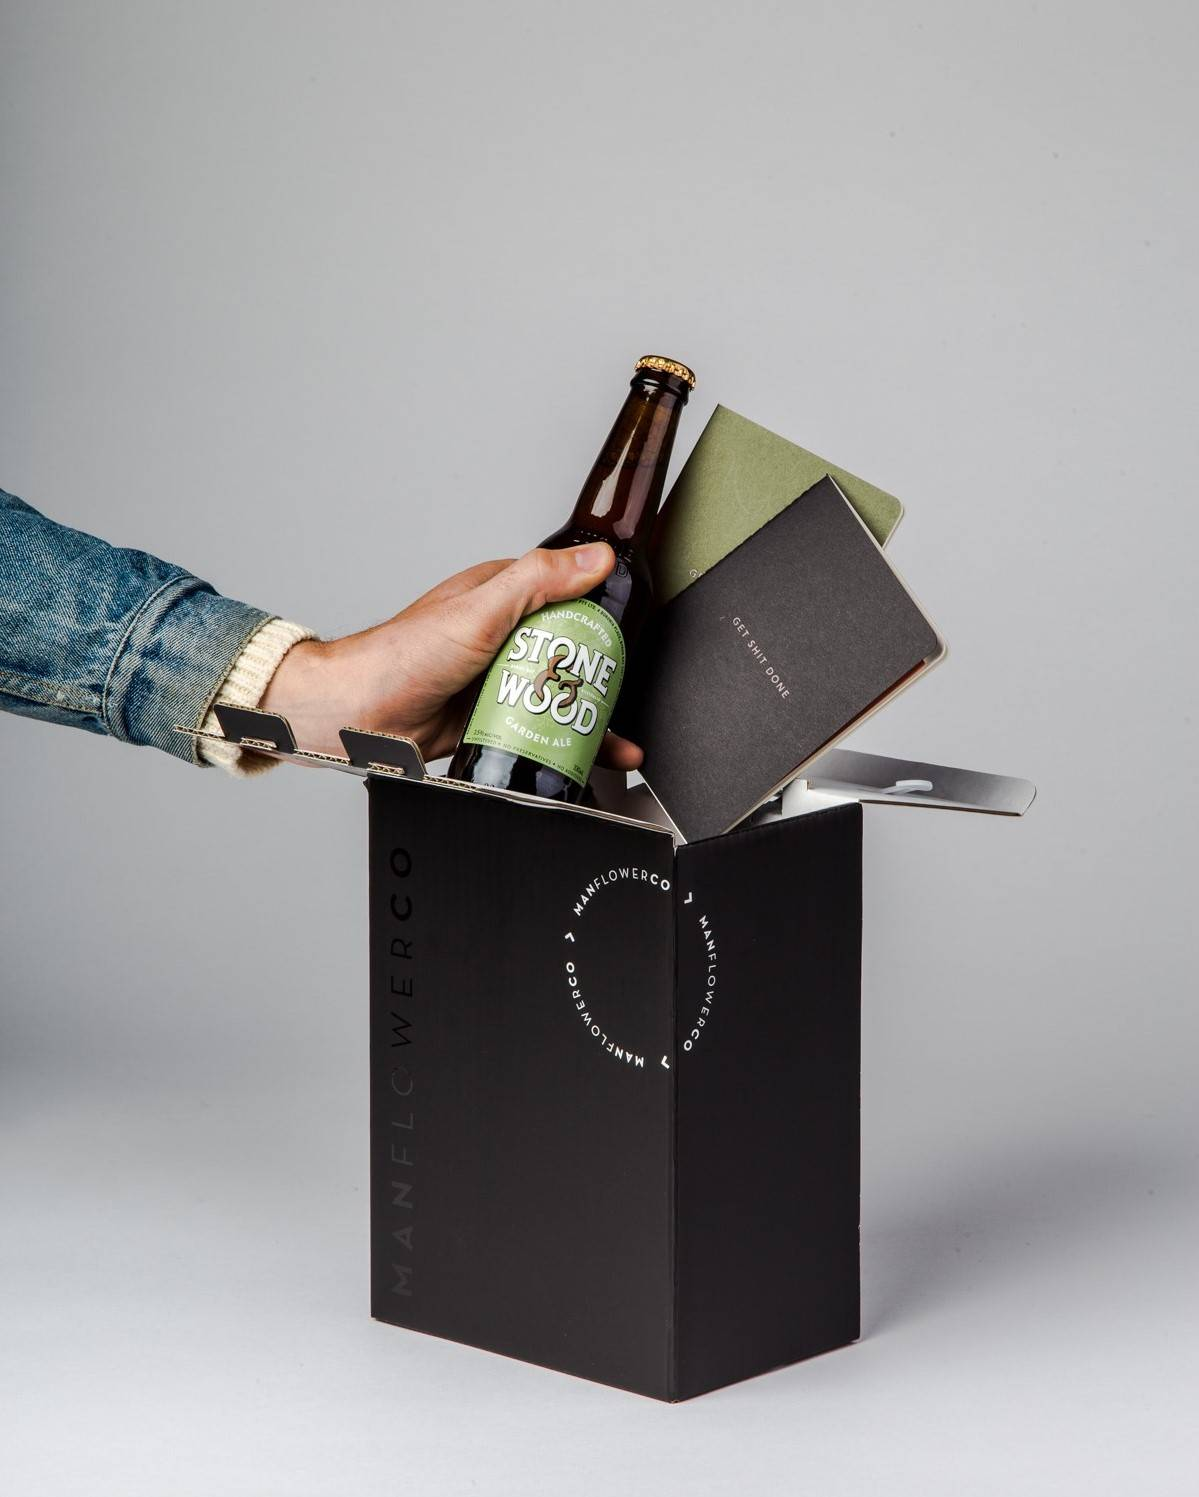 Toast to everyday occasions with the Productivity Pack, one of the beer gifts in Manflower Co's drinkable range.